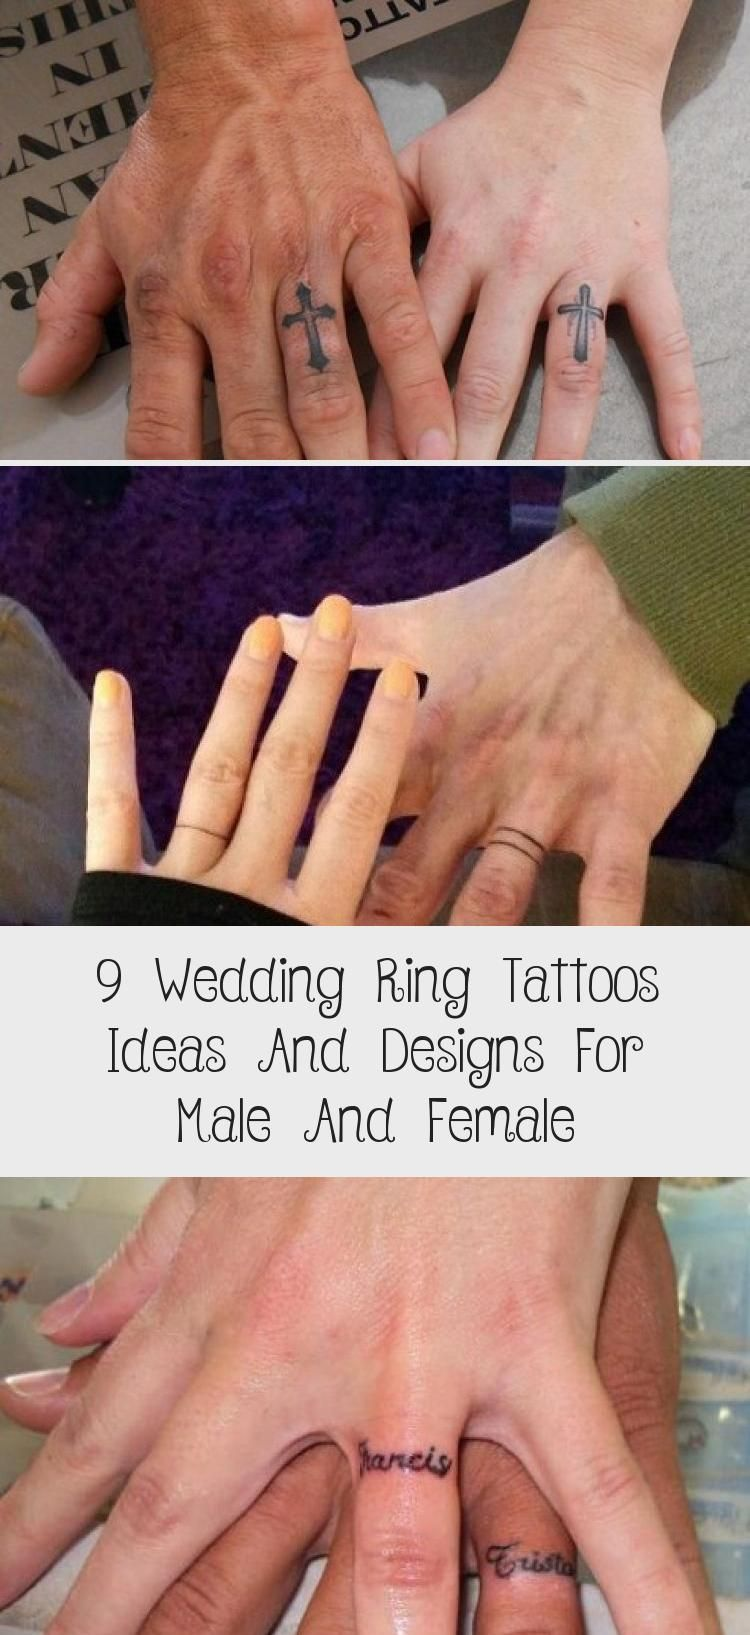 9 Wedding Ring Tattoos Ideas And Designs For Male And